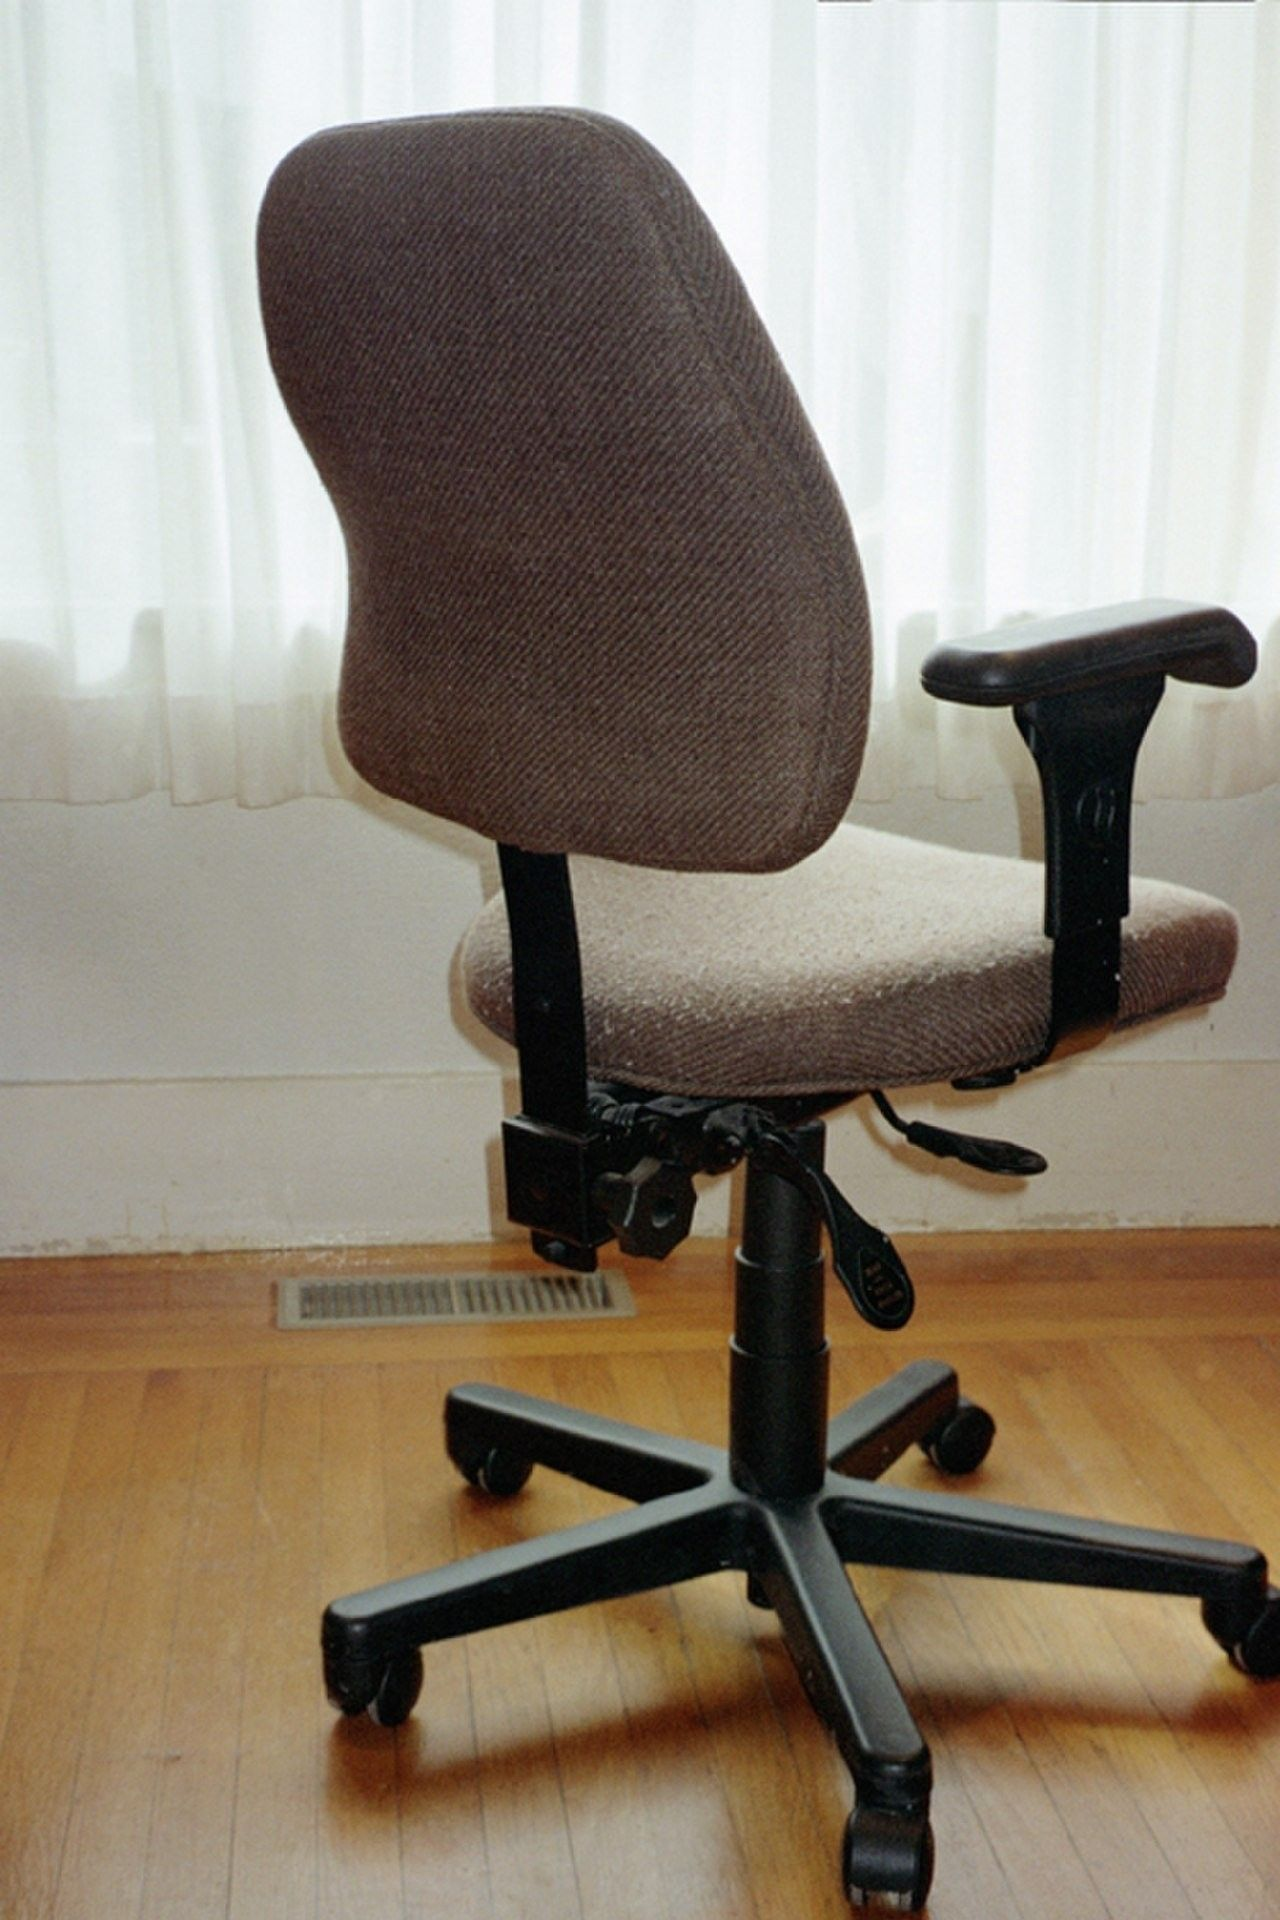 Upholstered Office Chair, Chair